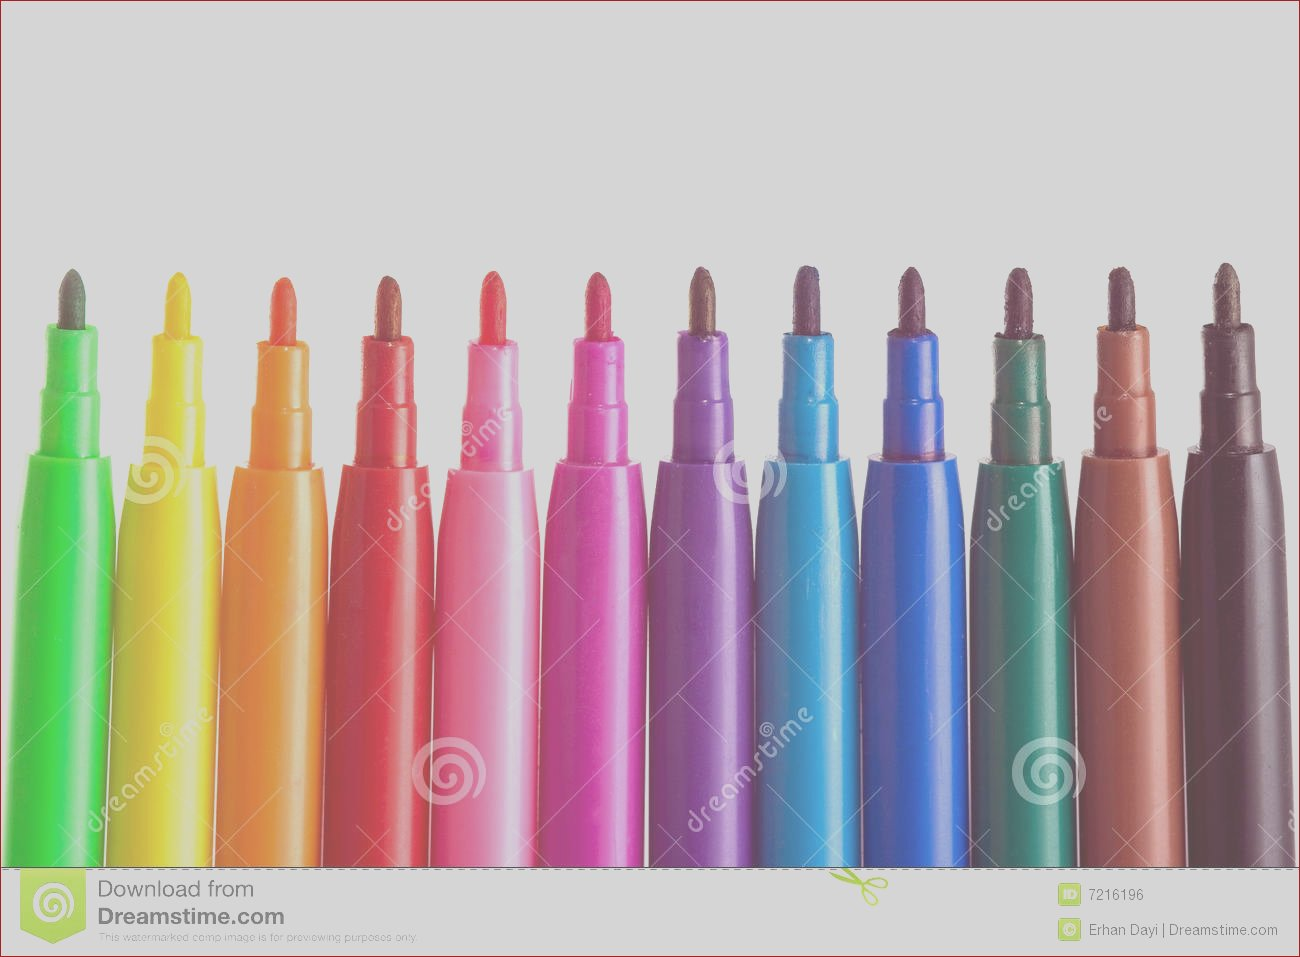 royalty free stock image coloring pens image